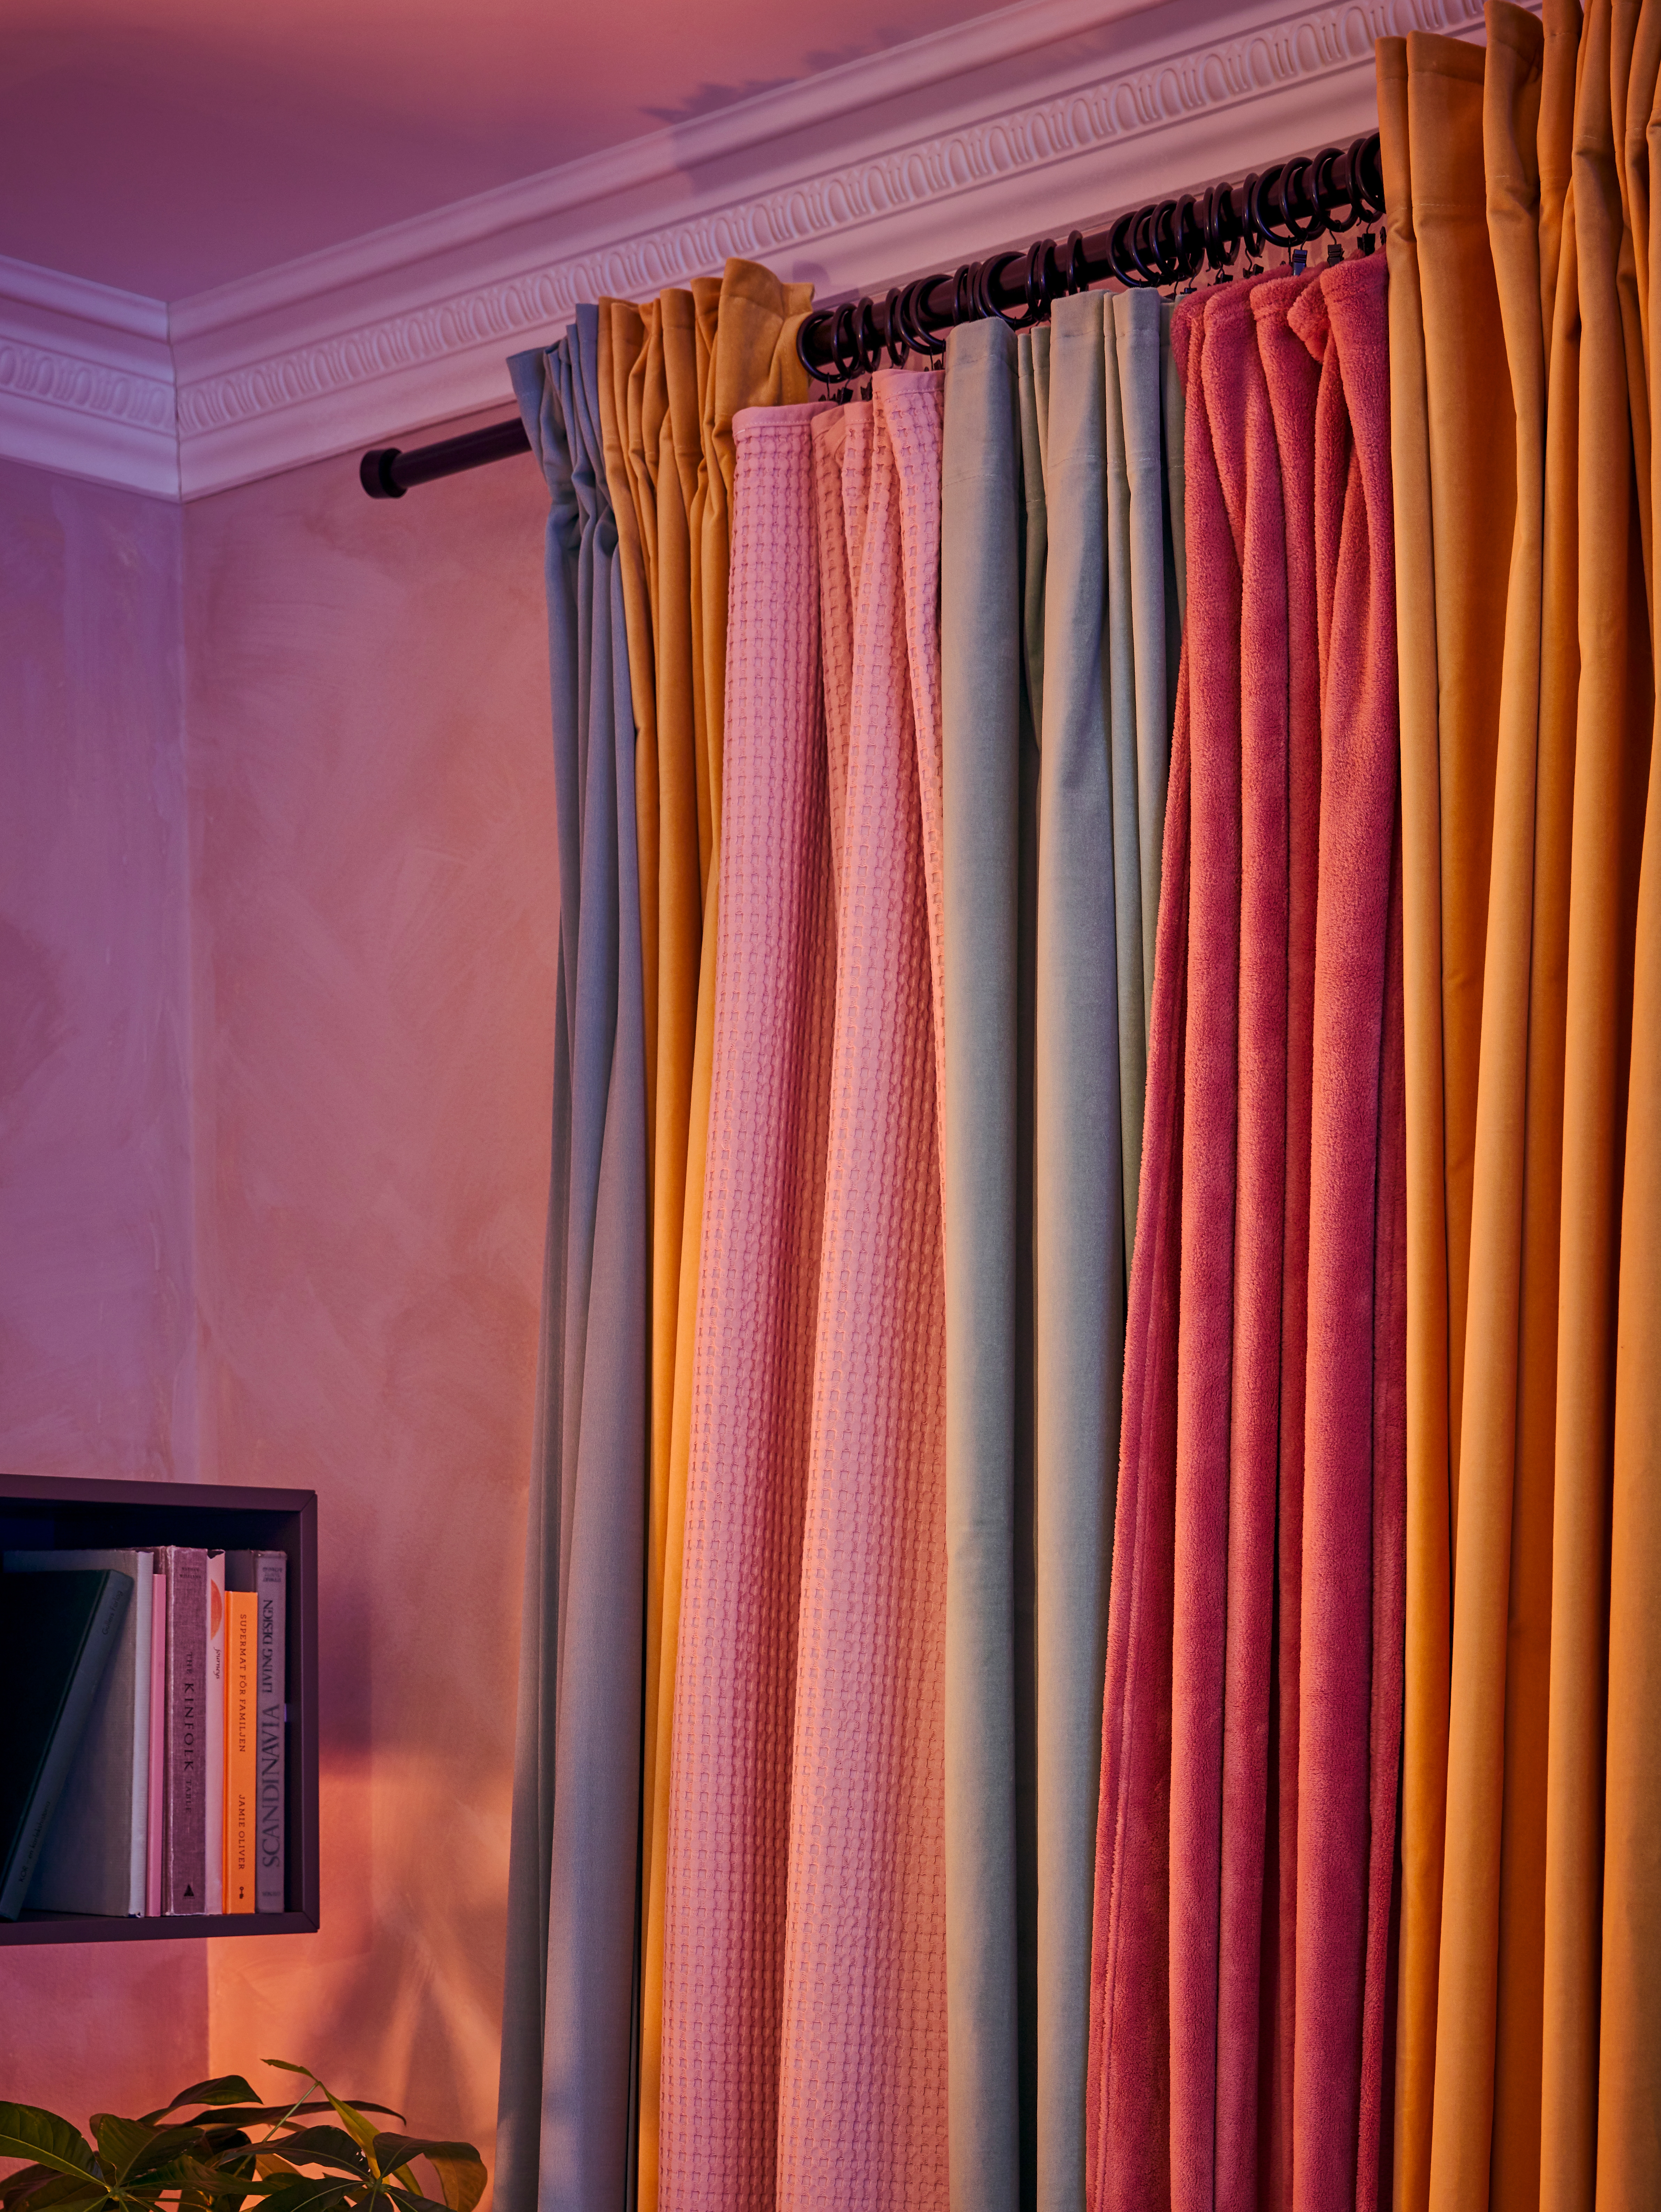 The curtains on a rod are pushed to the sides, and a dark pink TRATTVIVA bedspread hangs on curtain rings in the middle.